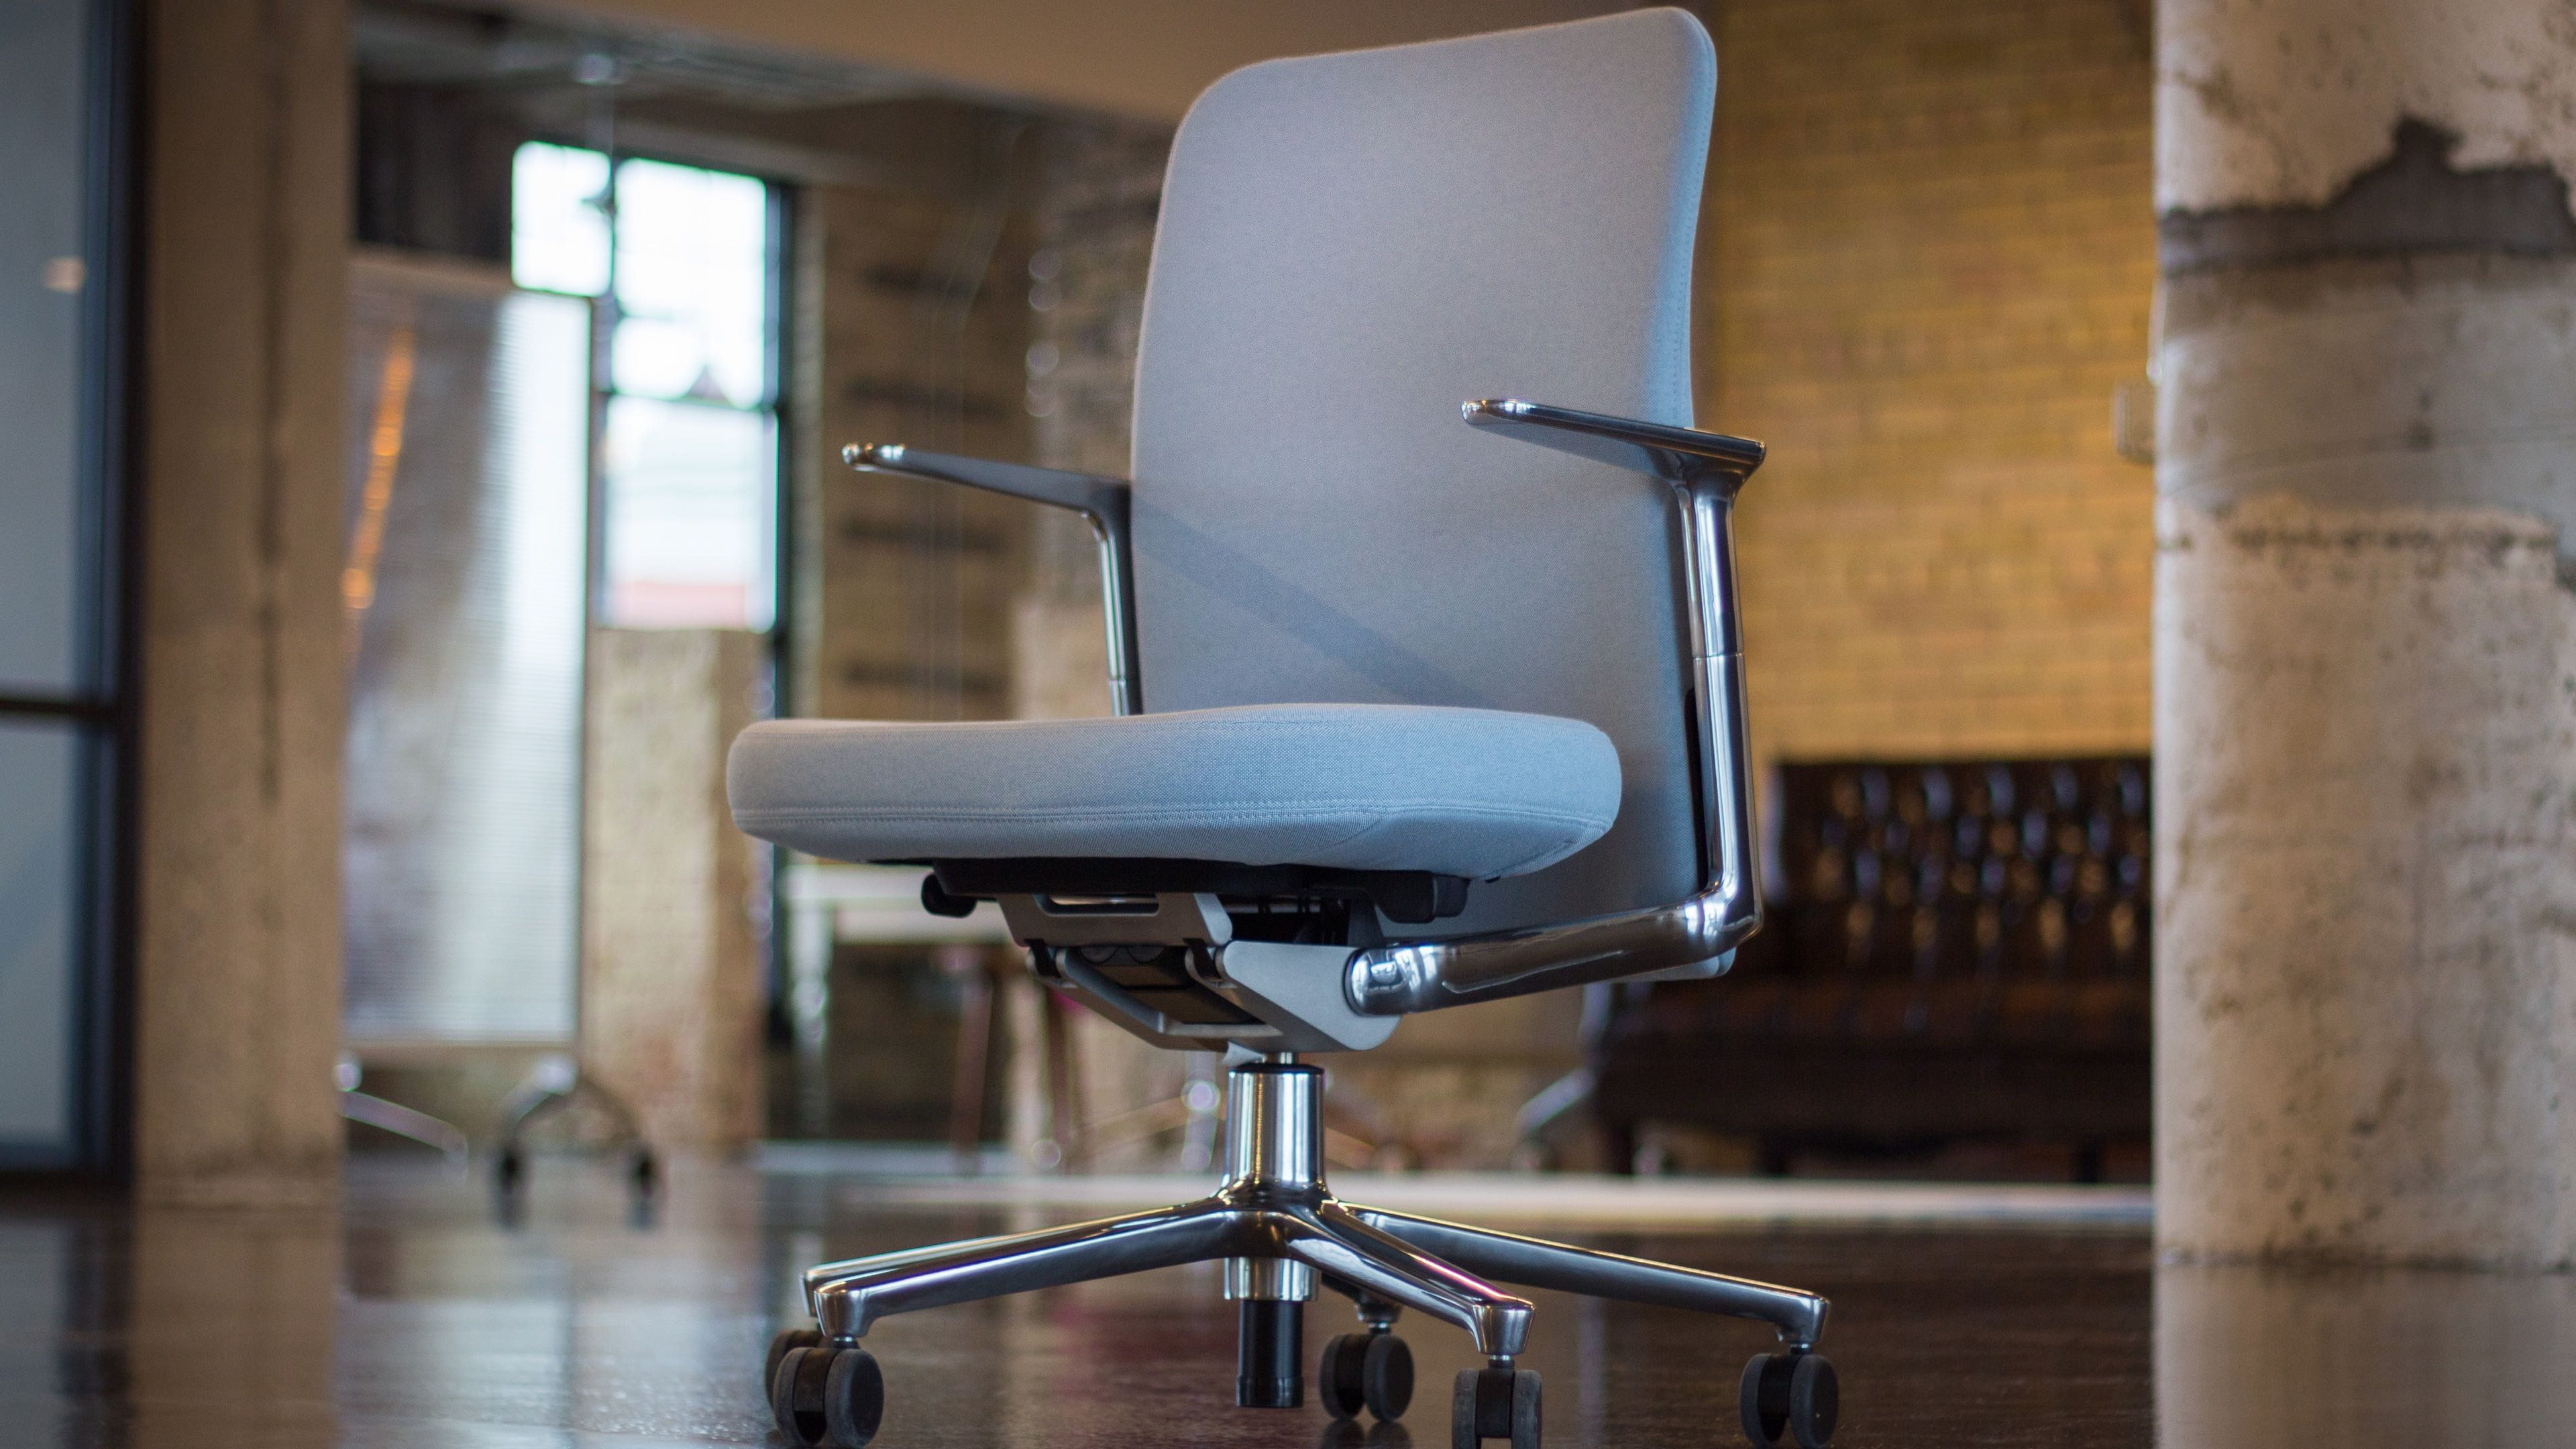 Body Built Chairs Review Living With Vitra S Pacific Chair Jony Ive S Choice For